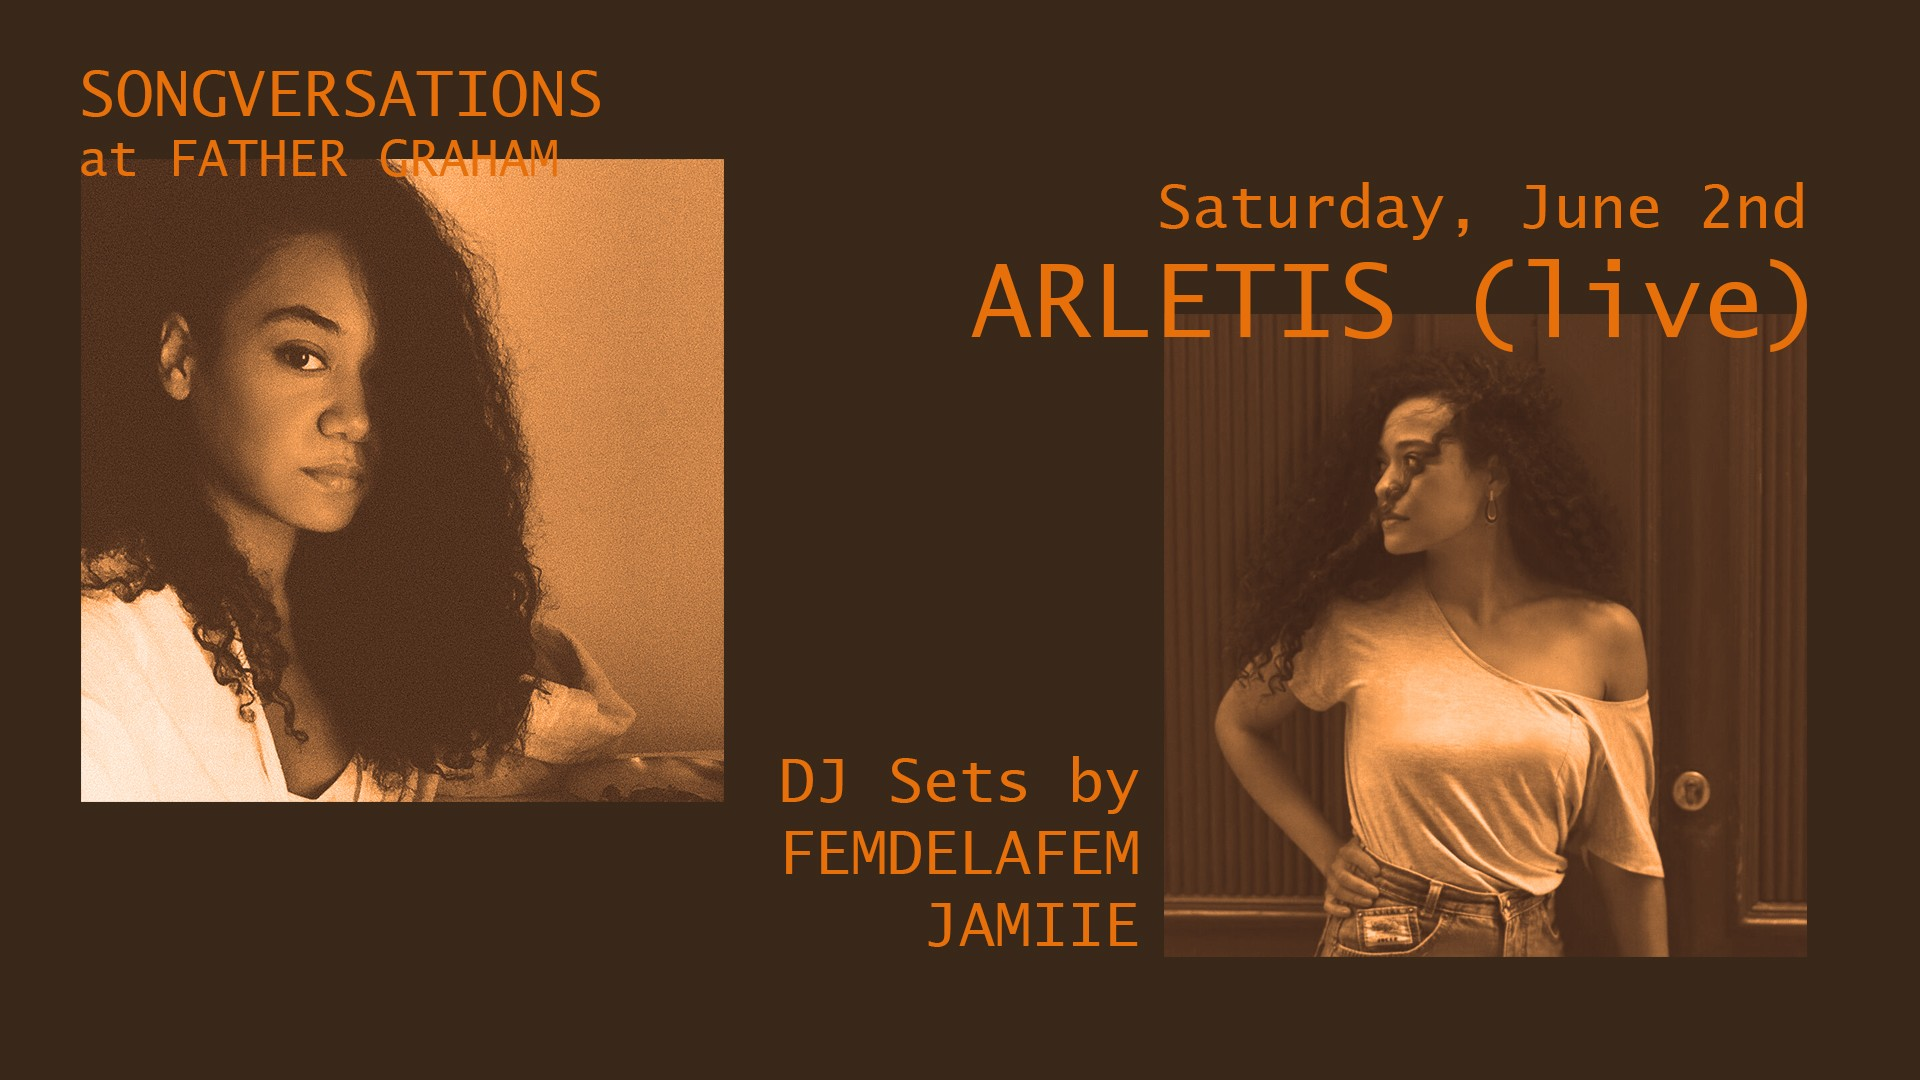 FATHER GRAHAM 02.06.2018 Songversations w/ Arletis (live), Jamiie & Femdelafem